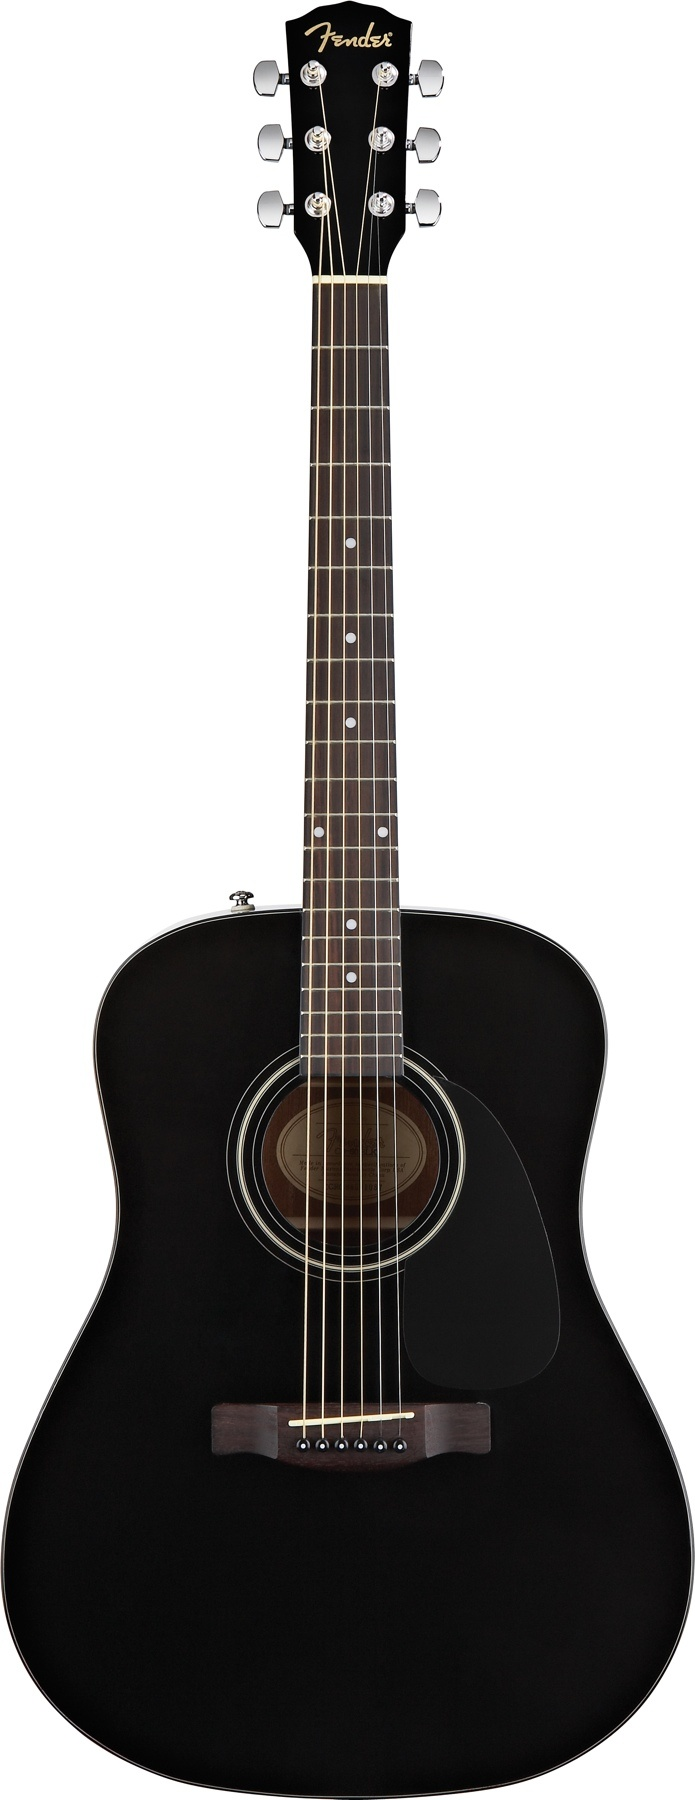 Black Fender CD-60 - The first guitar I ever bought!